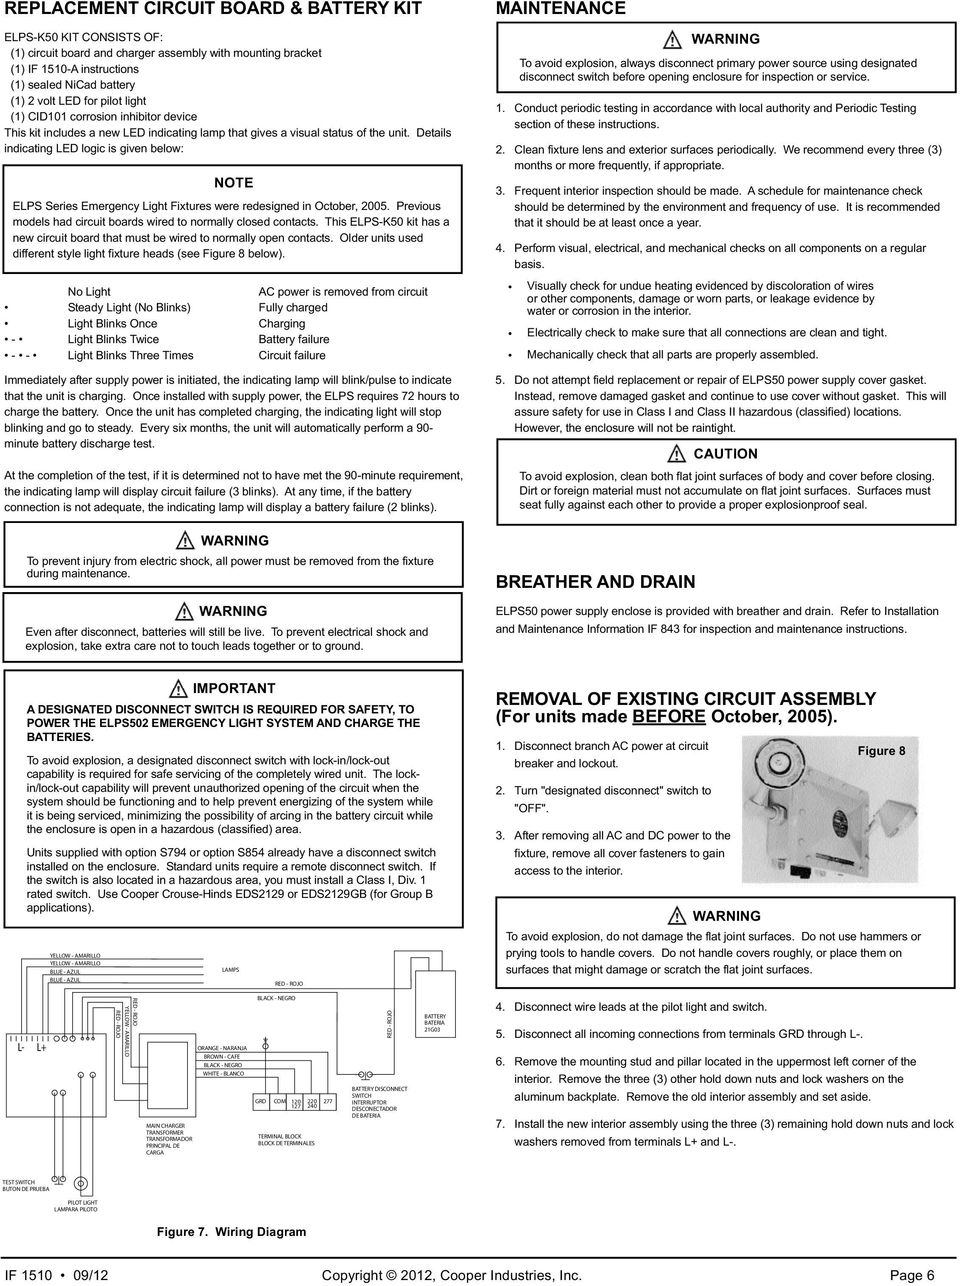 elevator installation and maintenance information pdf